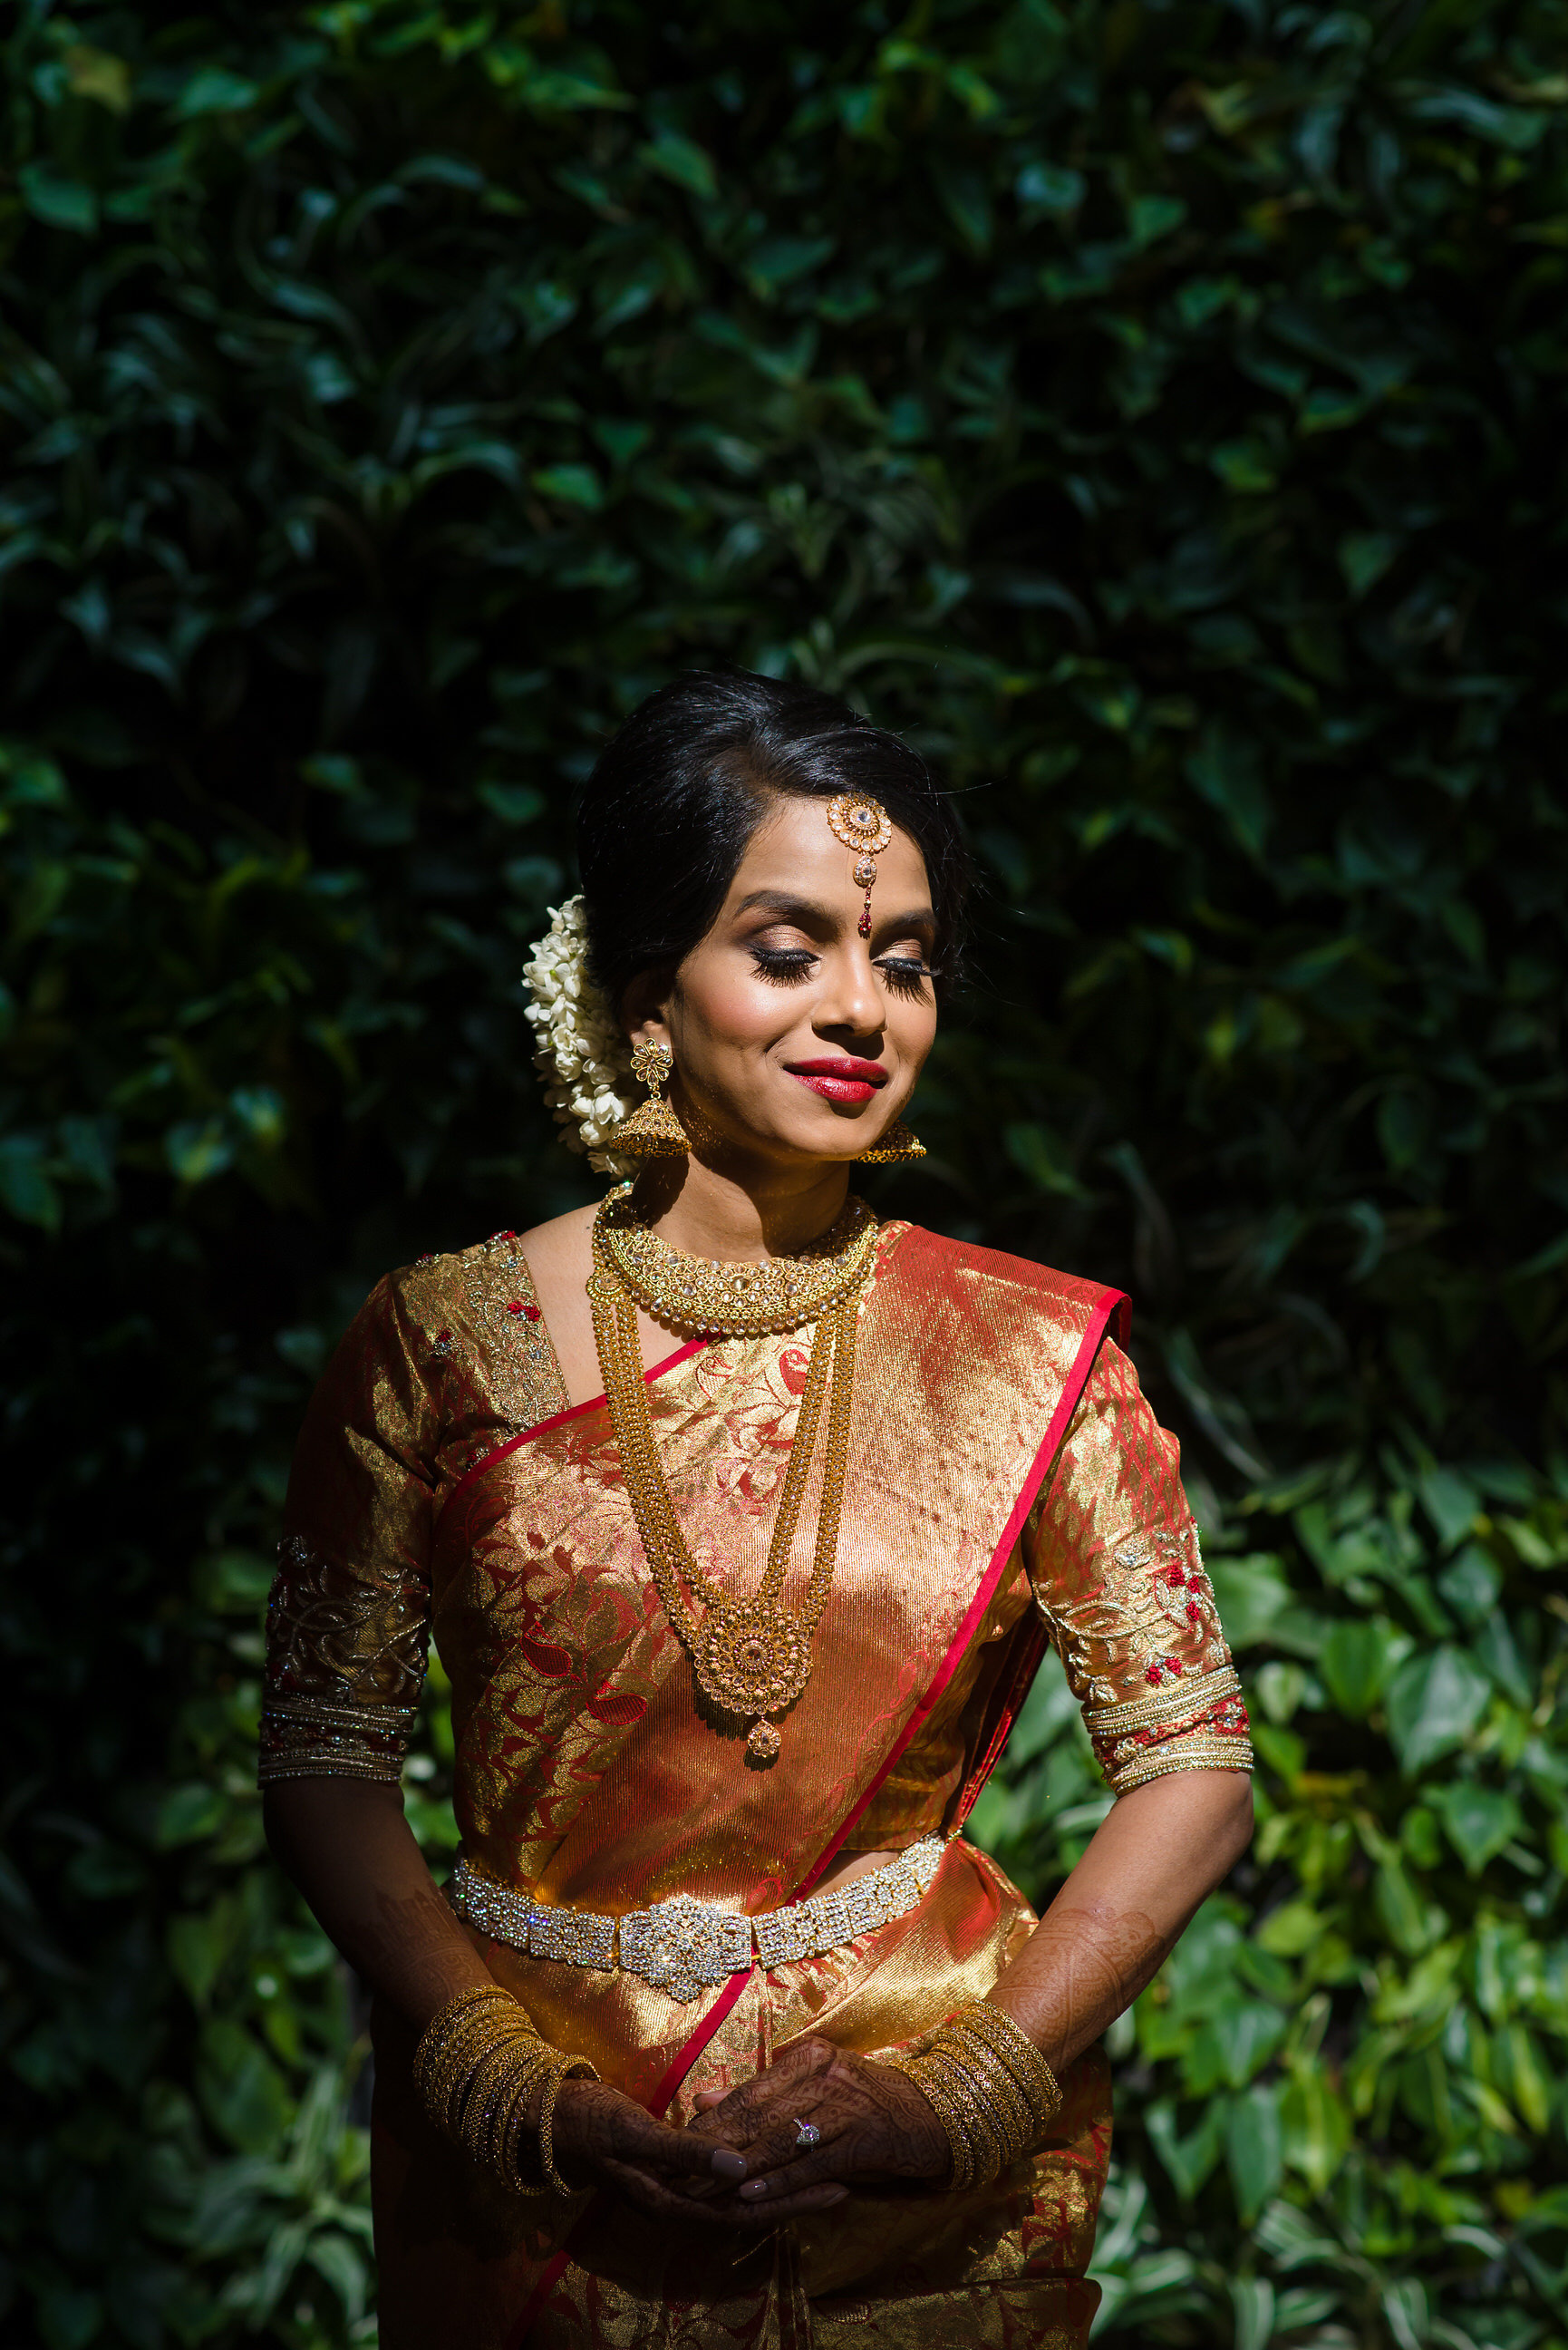 Parneeta-Sravan-Wedding-0394.jpg